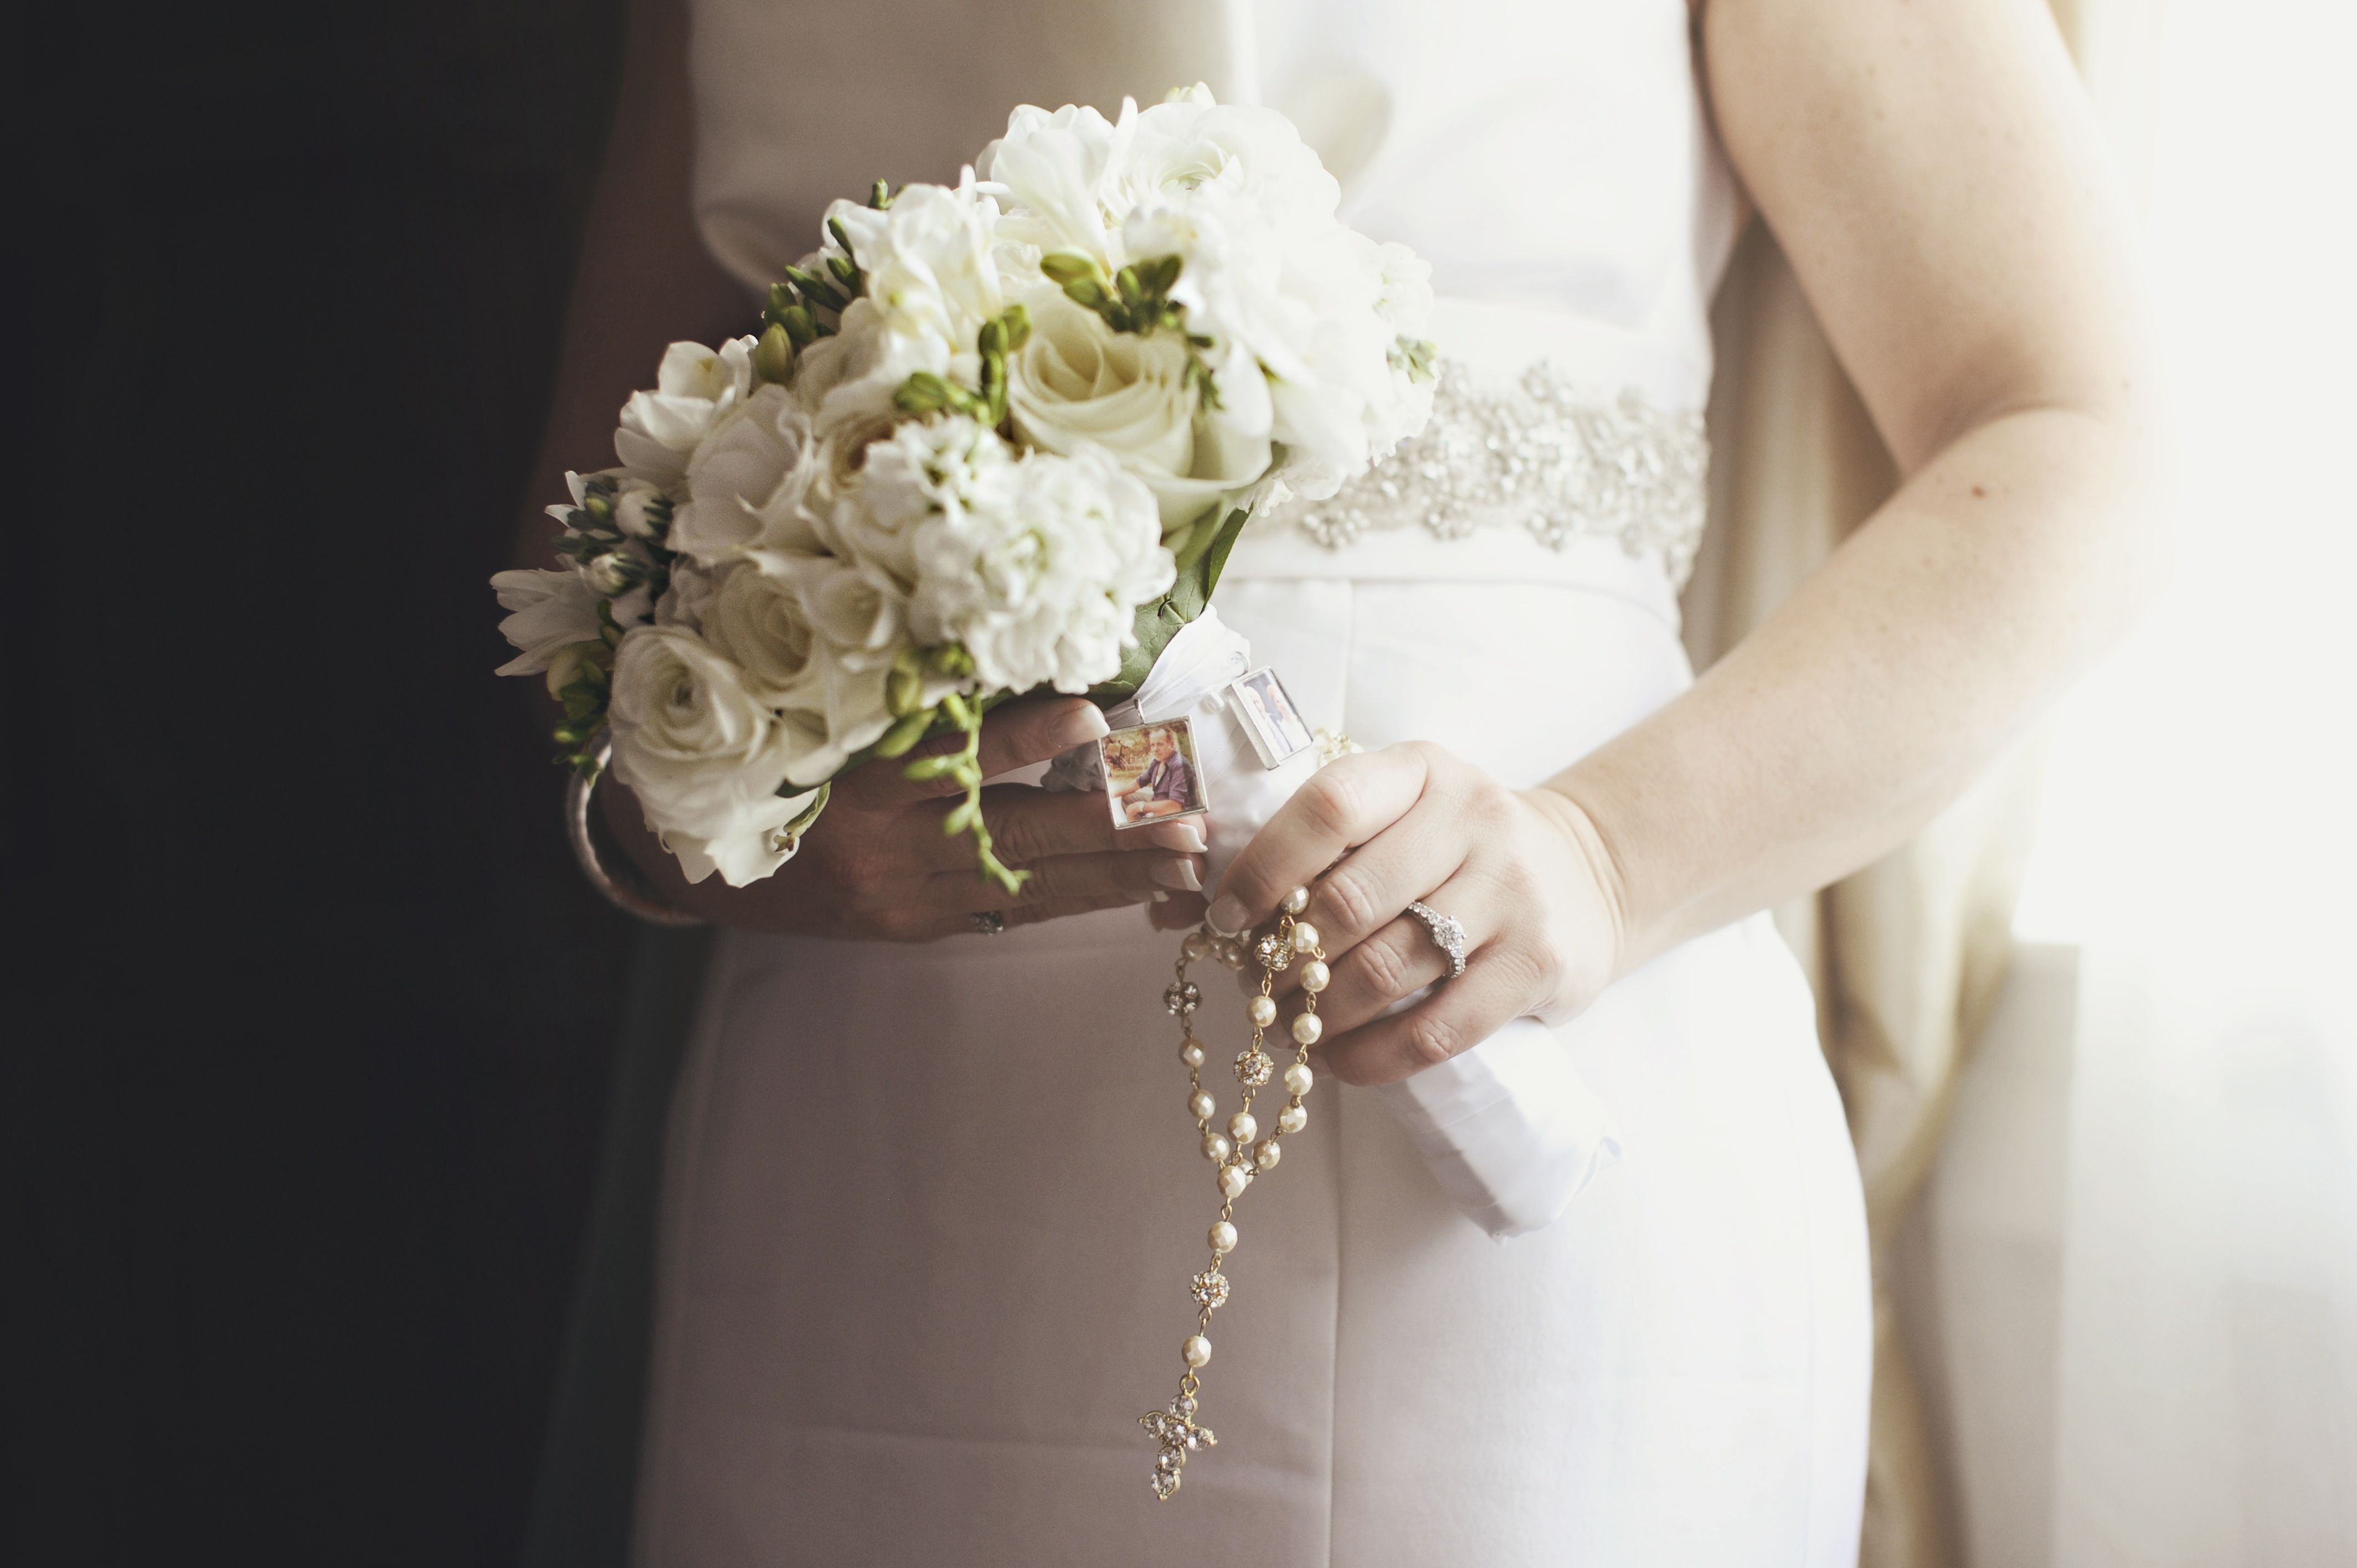 A Classic Bridal Bouquet Strung With An Image Of A Family Member